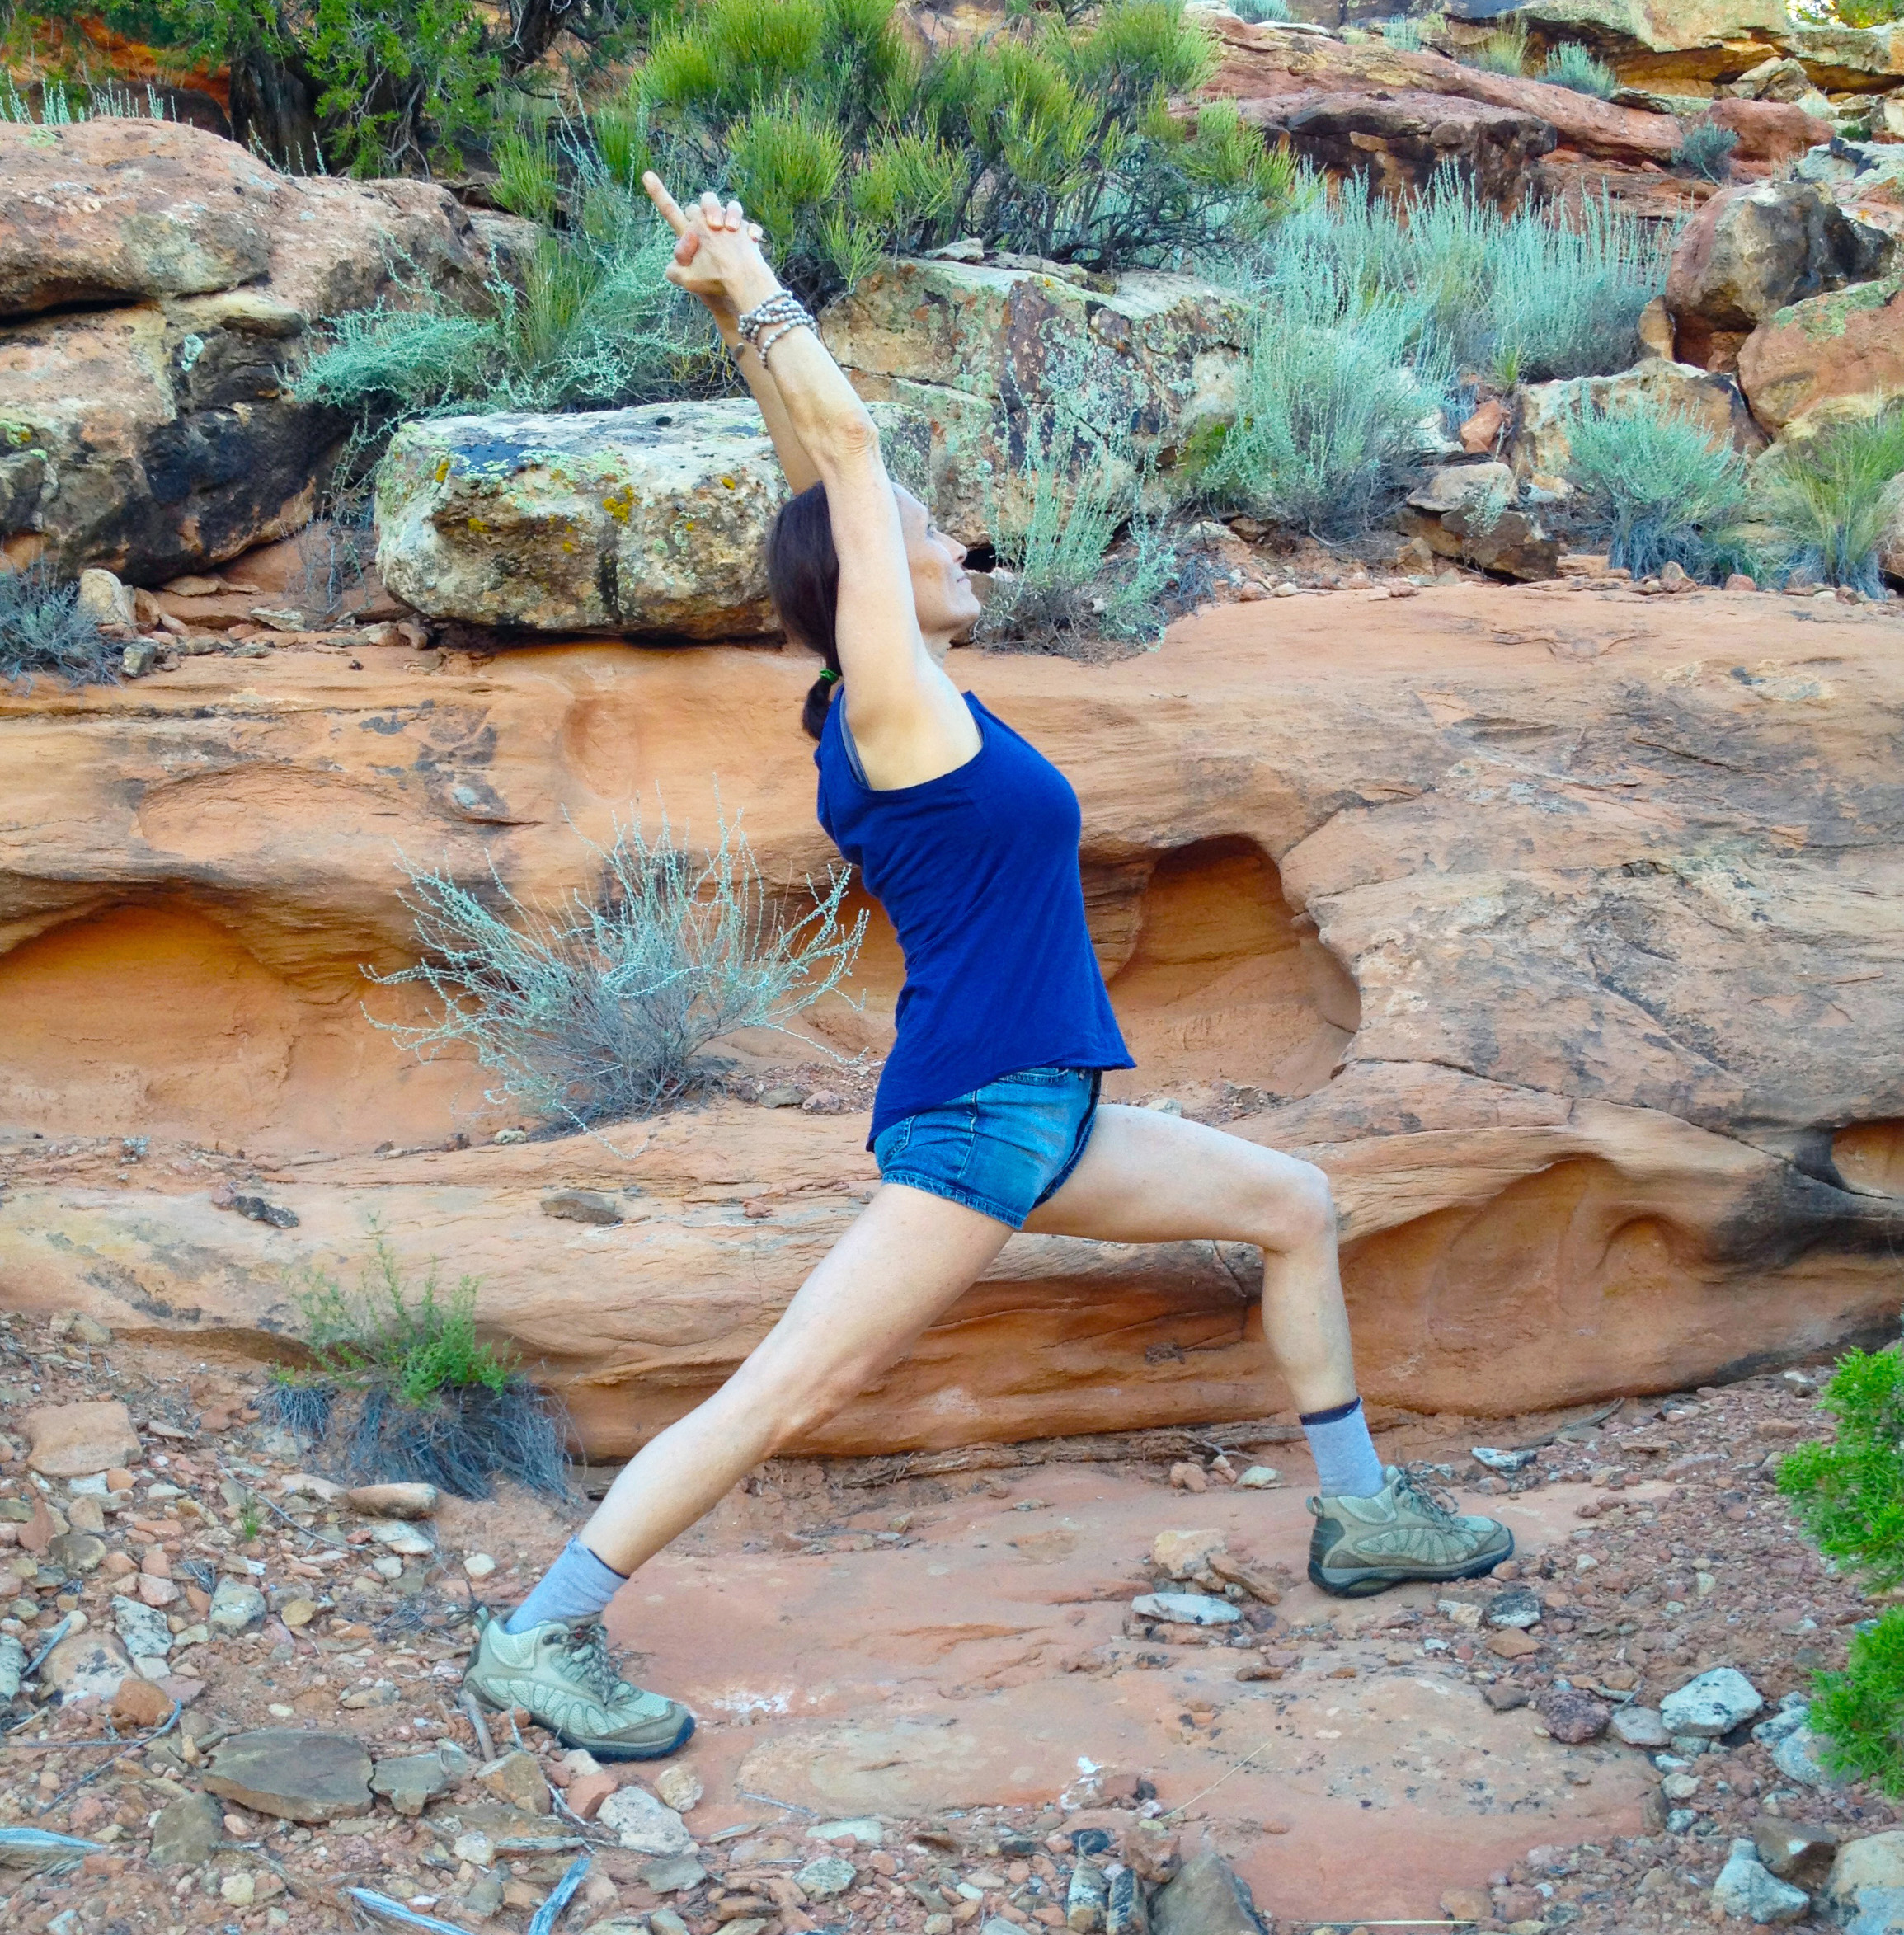 Ellen Forman E-RYT500 is an eclectic yogini-artist who loves to travel, hike and exploring yoga in new places! Ellen also LOVES autumn and being in nature. She is super excited about sharing yoga on this weekend adventure! She draws inspiration from all that she has gathered and weaves it into her creative spirit and her teaching style.